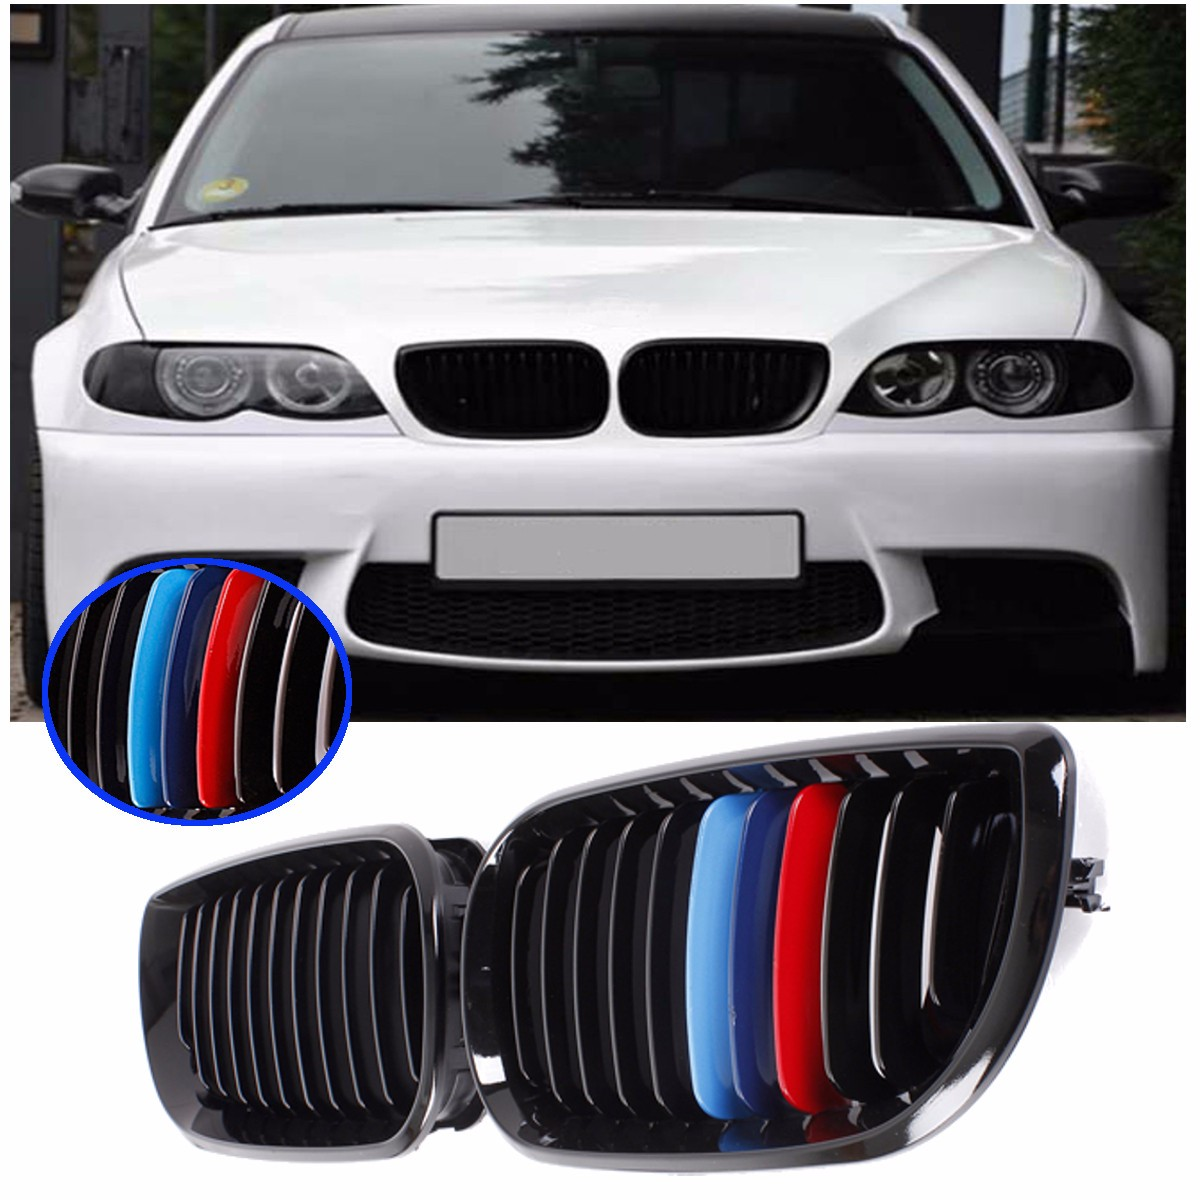 Bmw Grills: Pair Front Gloss Black M Color Kidney Grille Grill For BMW